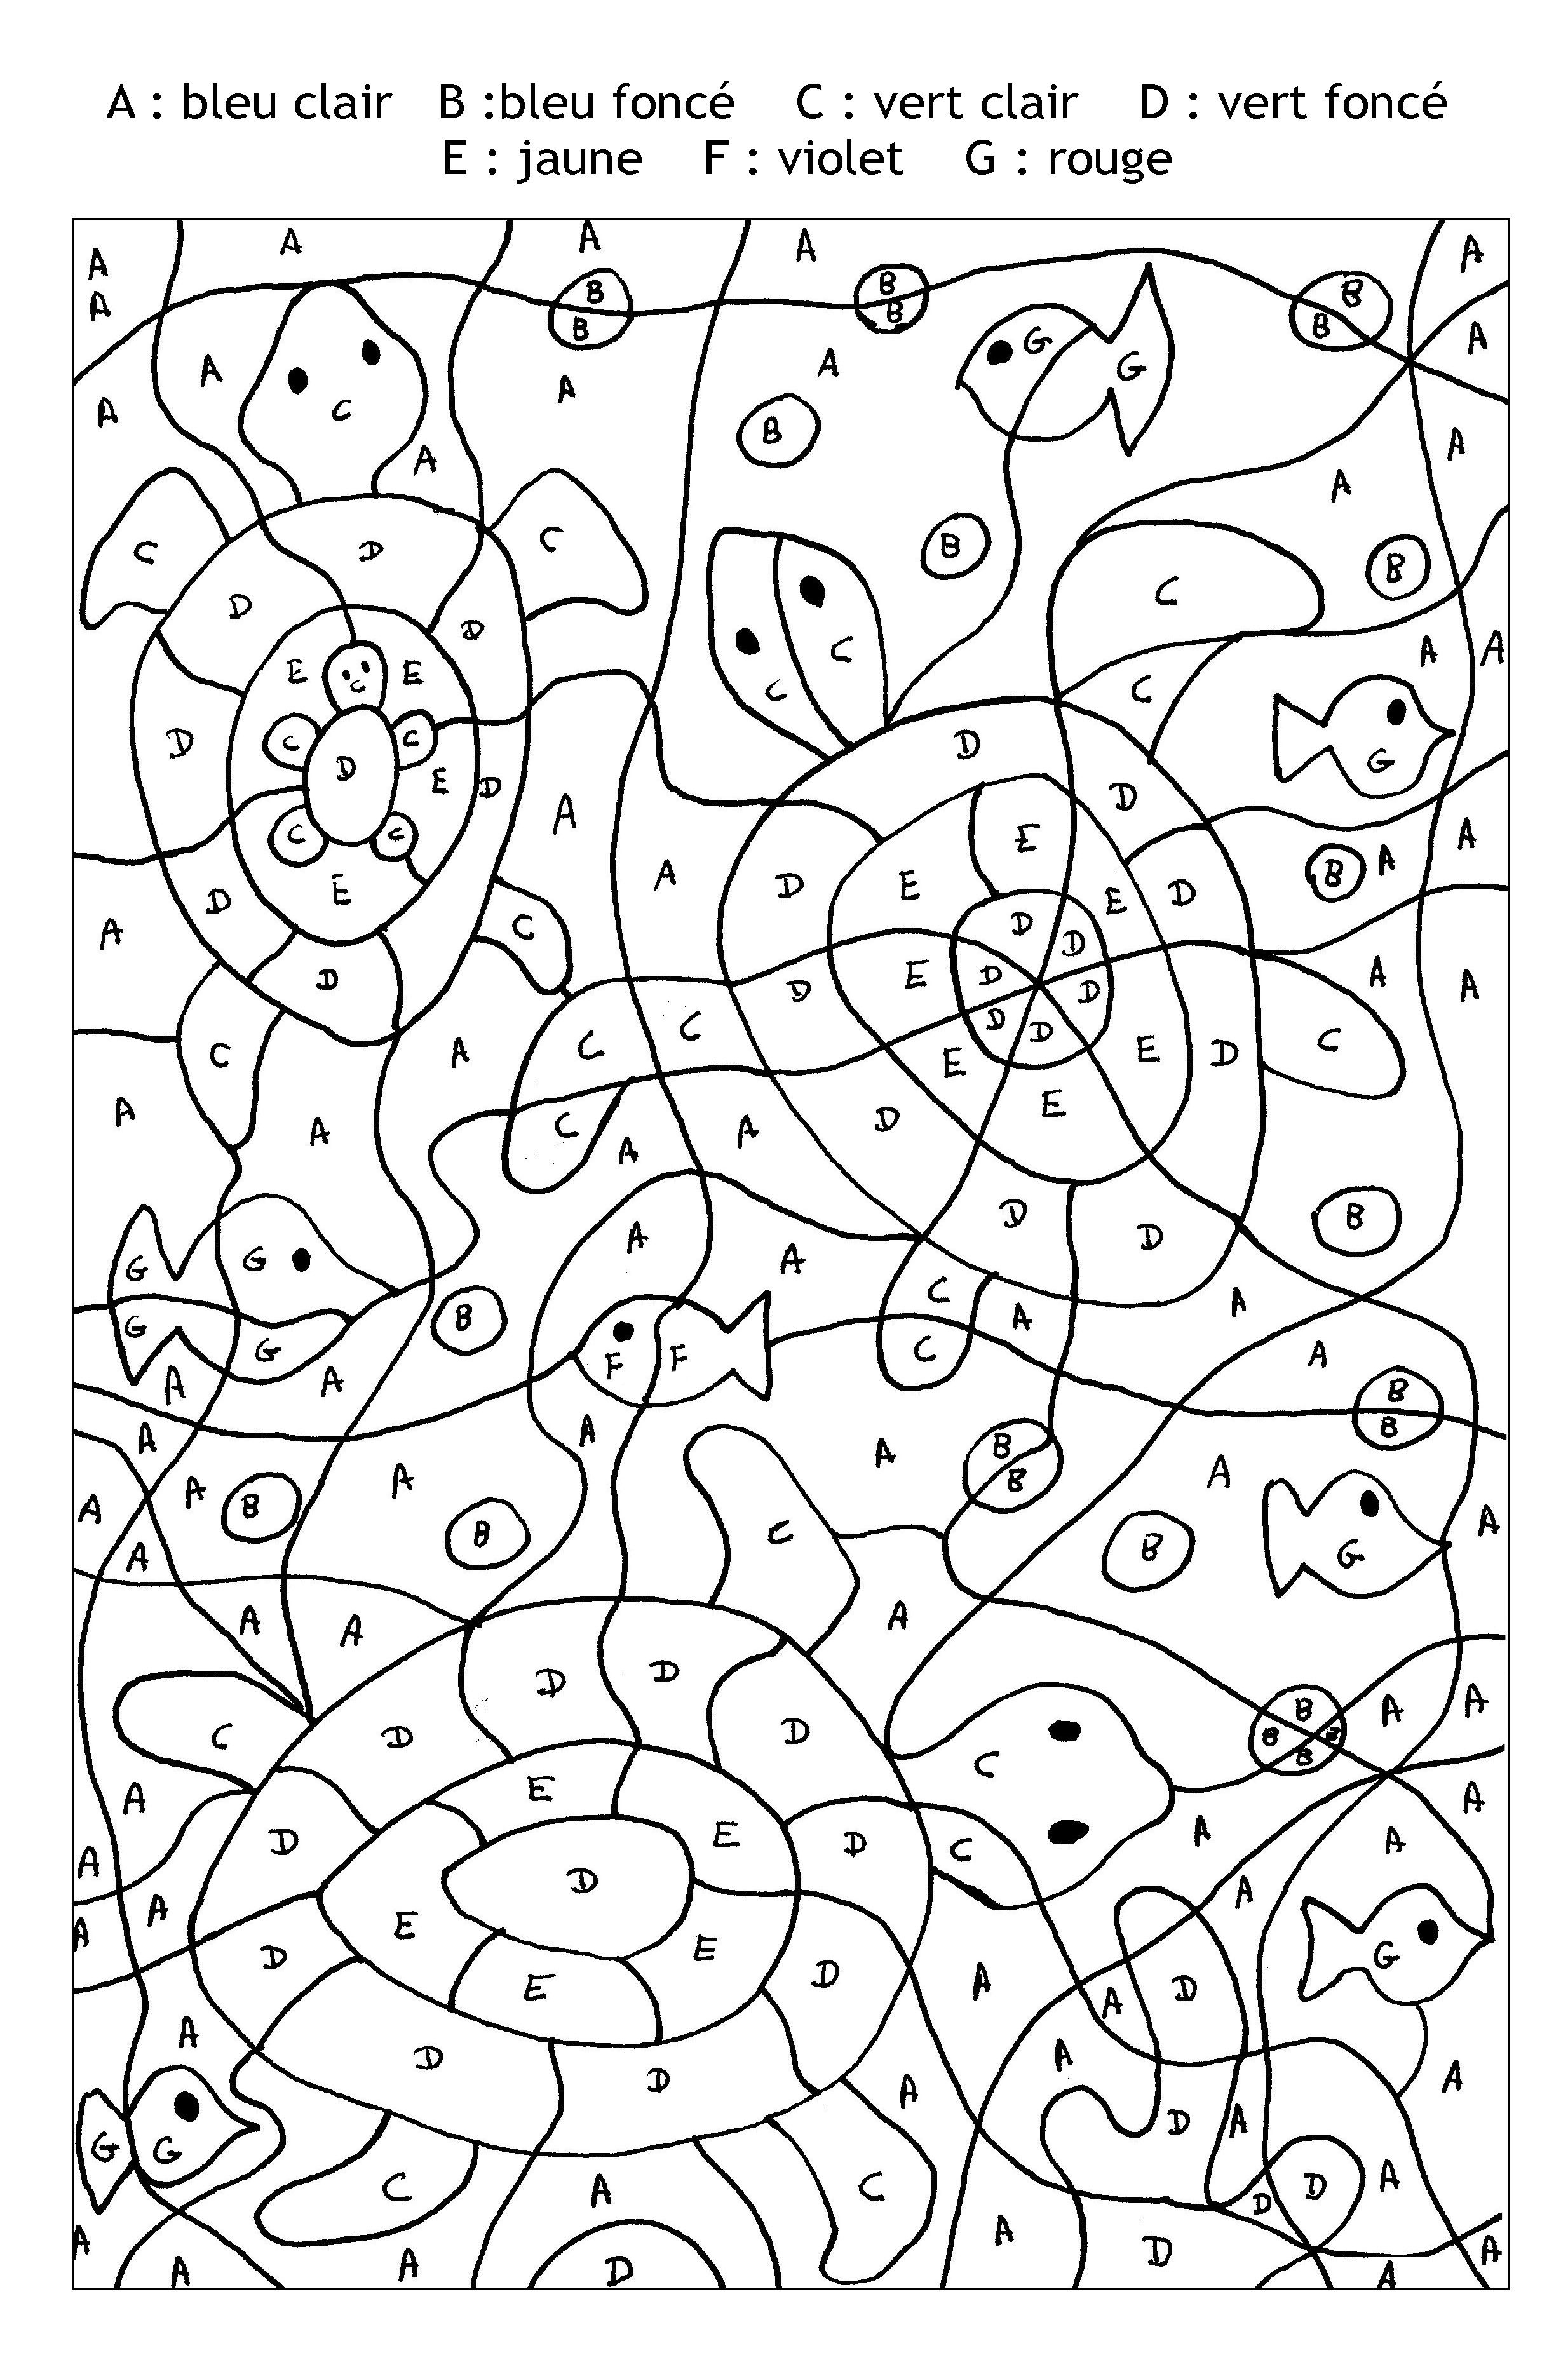 Épinglé Sur Color By Number For Adults And Children à Coloriage Simba A Imprimer Gratuit